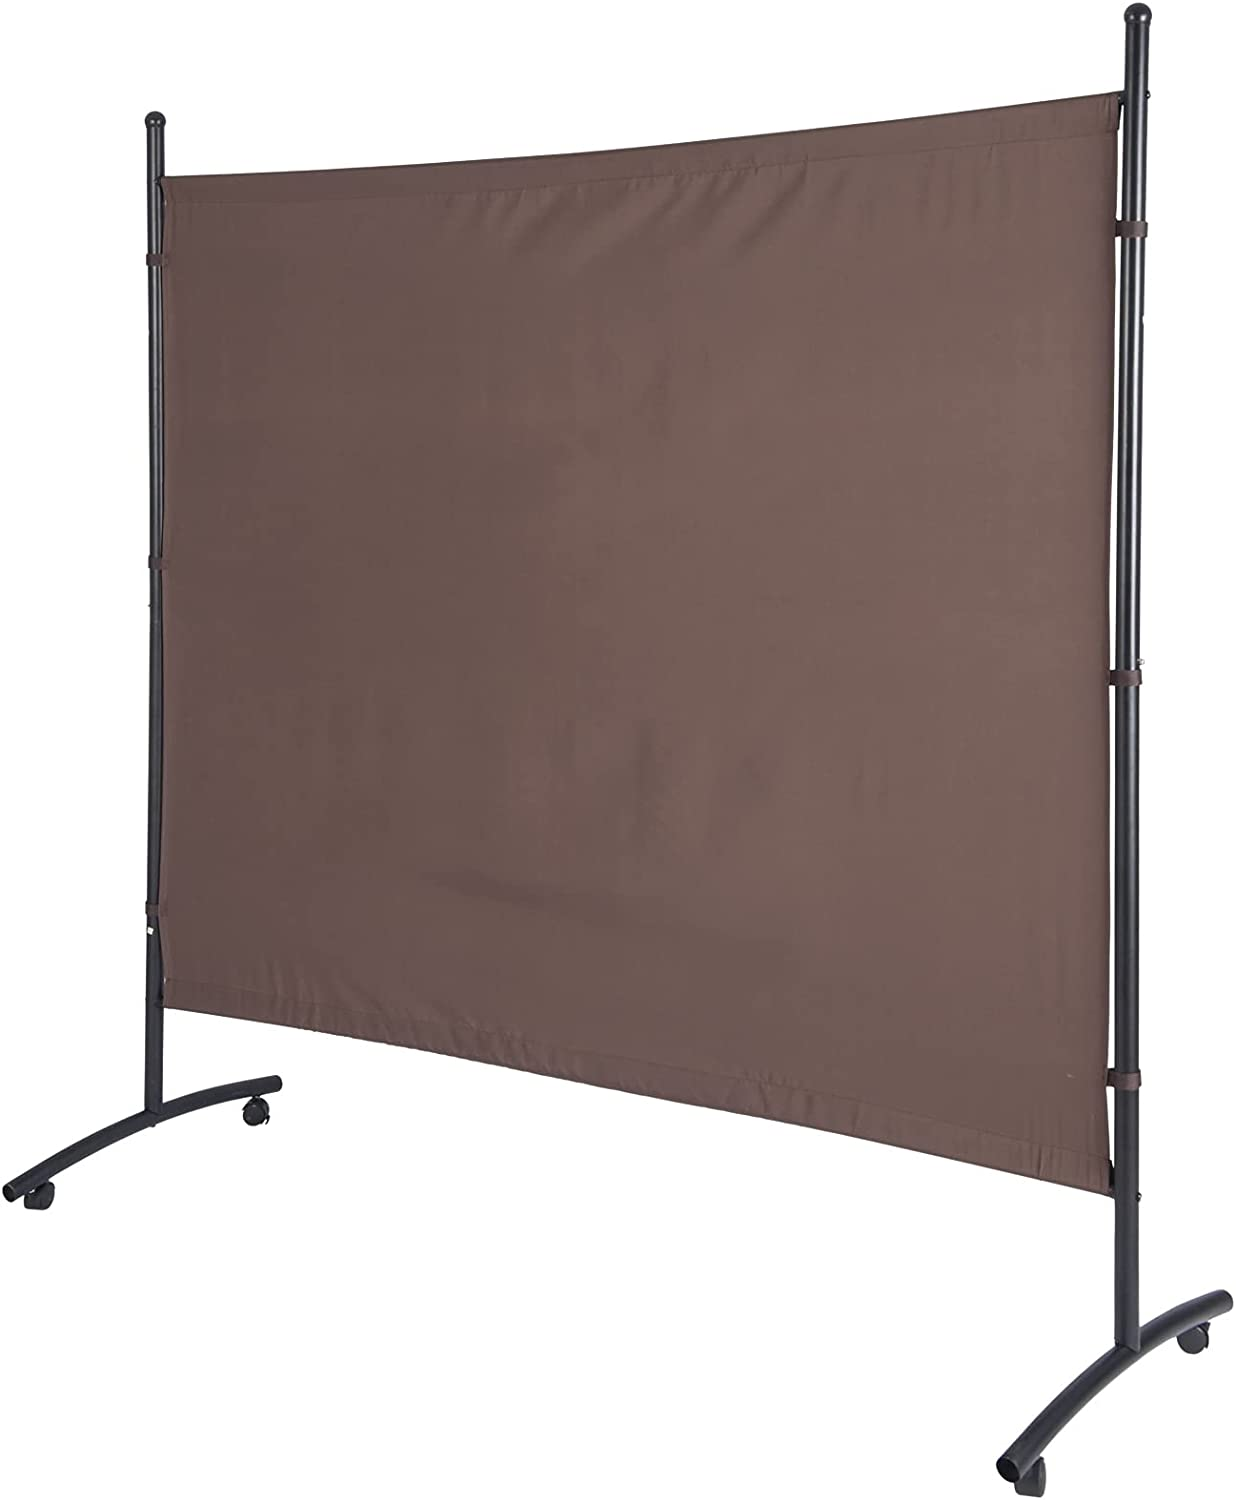 Room Divider Increased Wheel Super Special SALE held 70''W Privacy Scree x 73''H 35% OFF 20''D